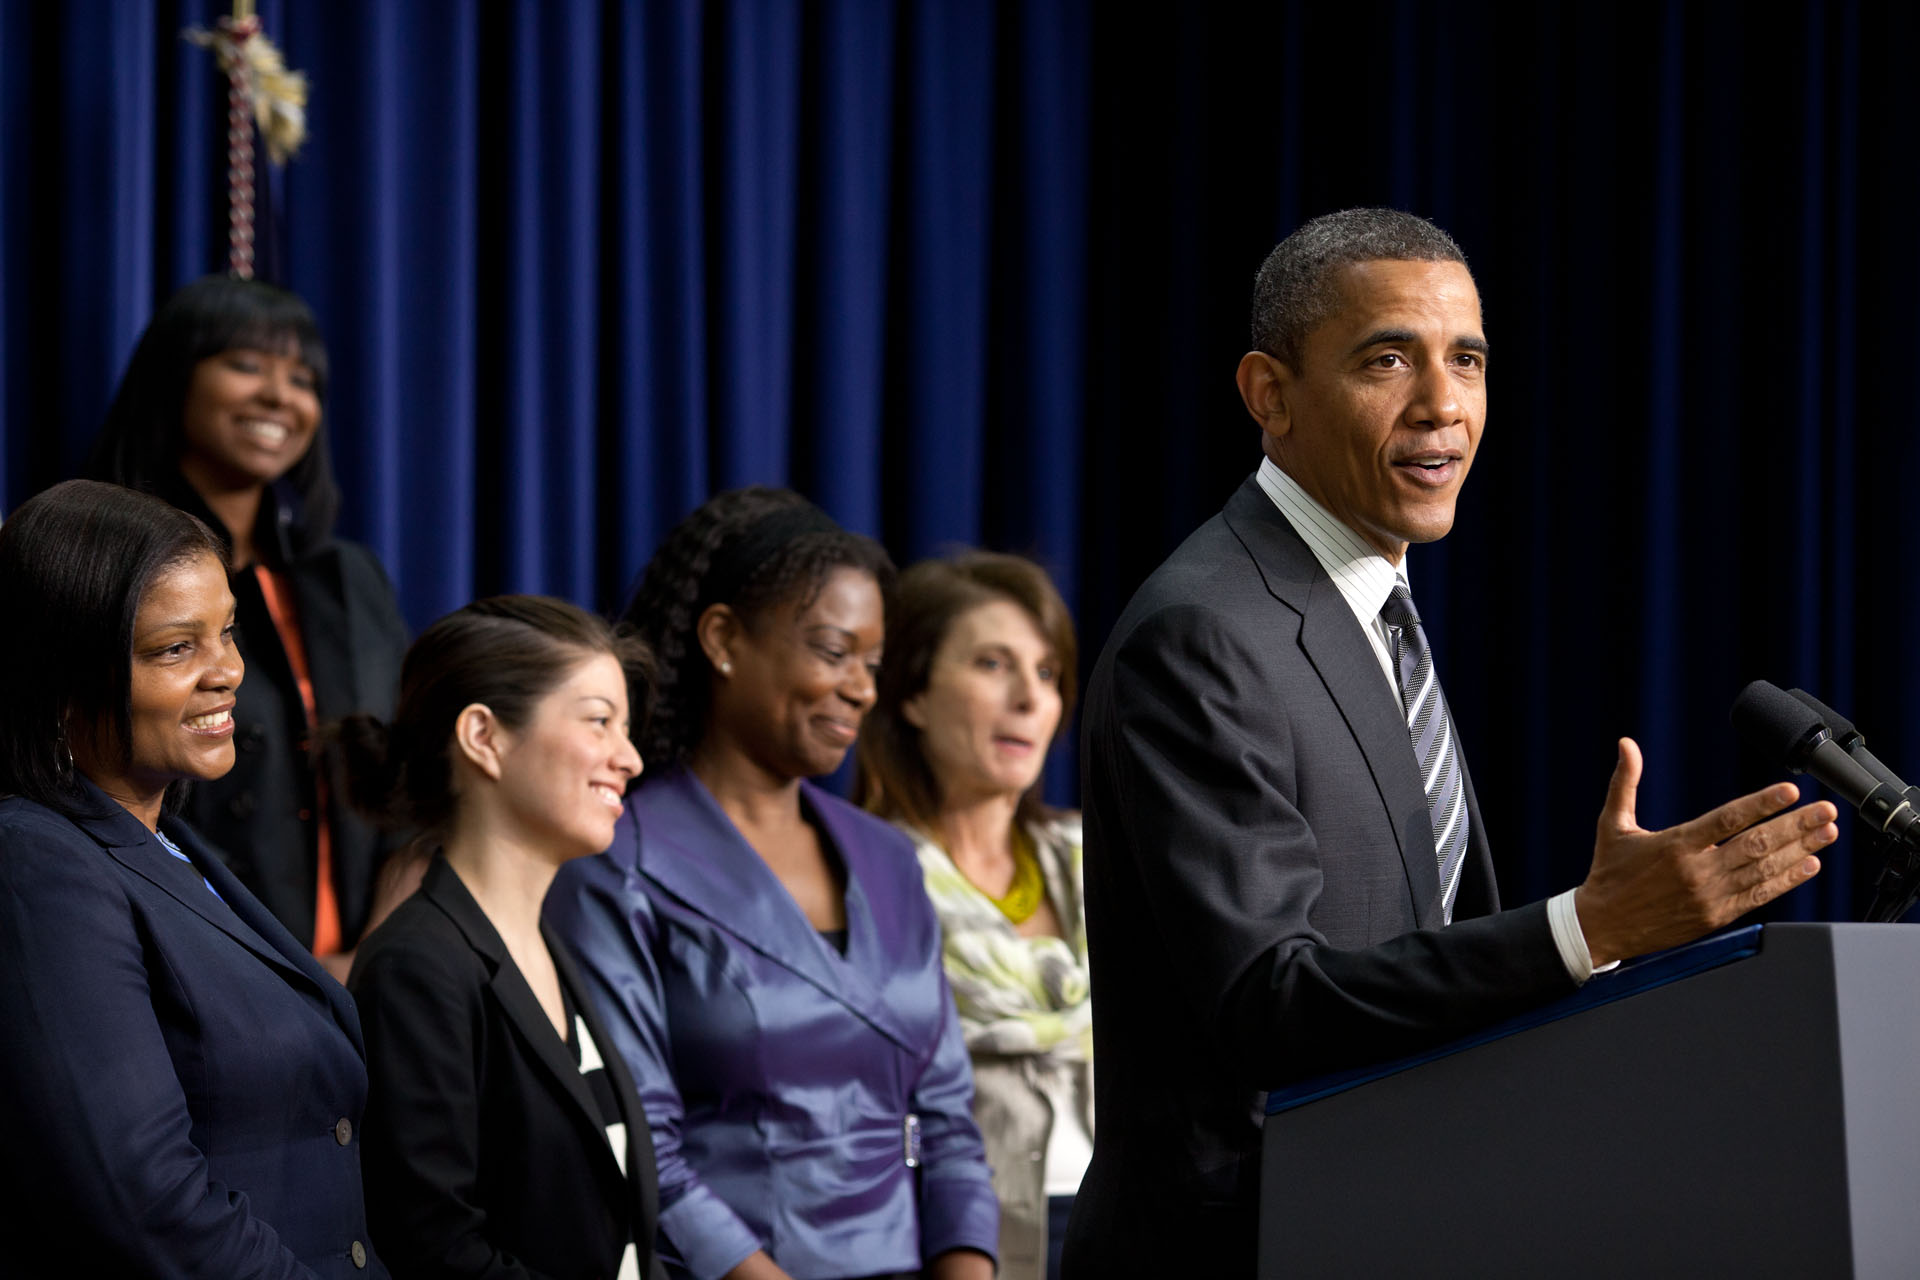 President Obama Delivers Remarks at the White House Forum on Women and the Economy